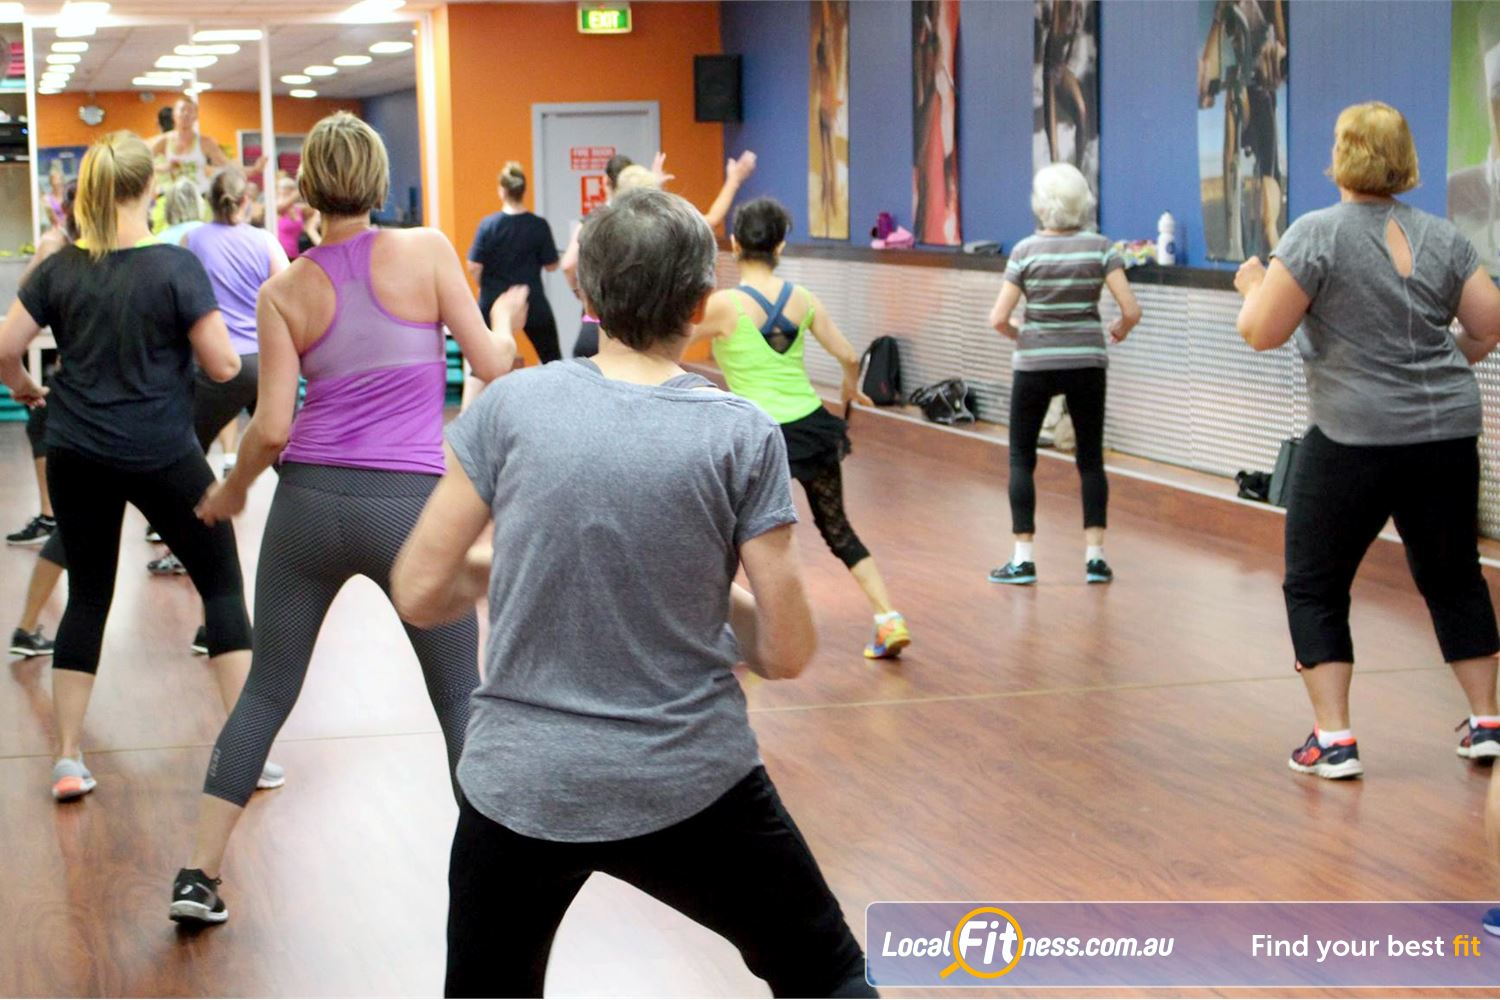 Plus Fitness Health Clubs Near Merrylands Dance your way to fitness with our classes inc. Northmead Zumba.